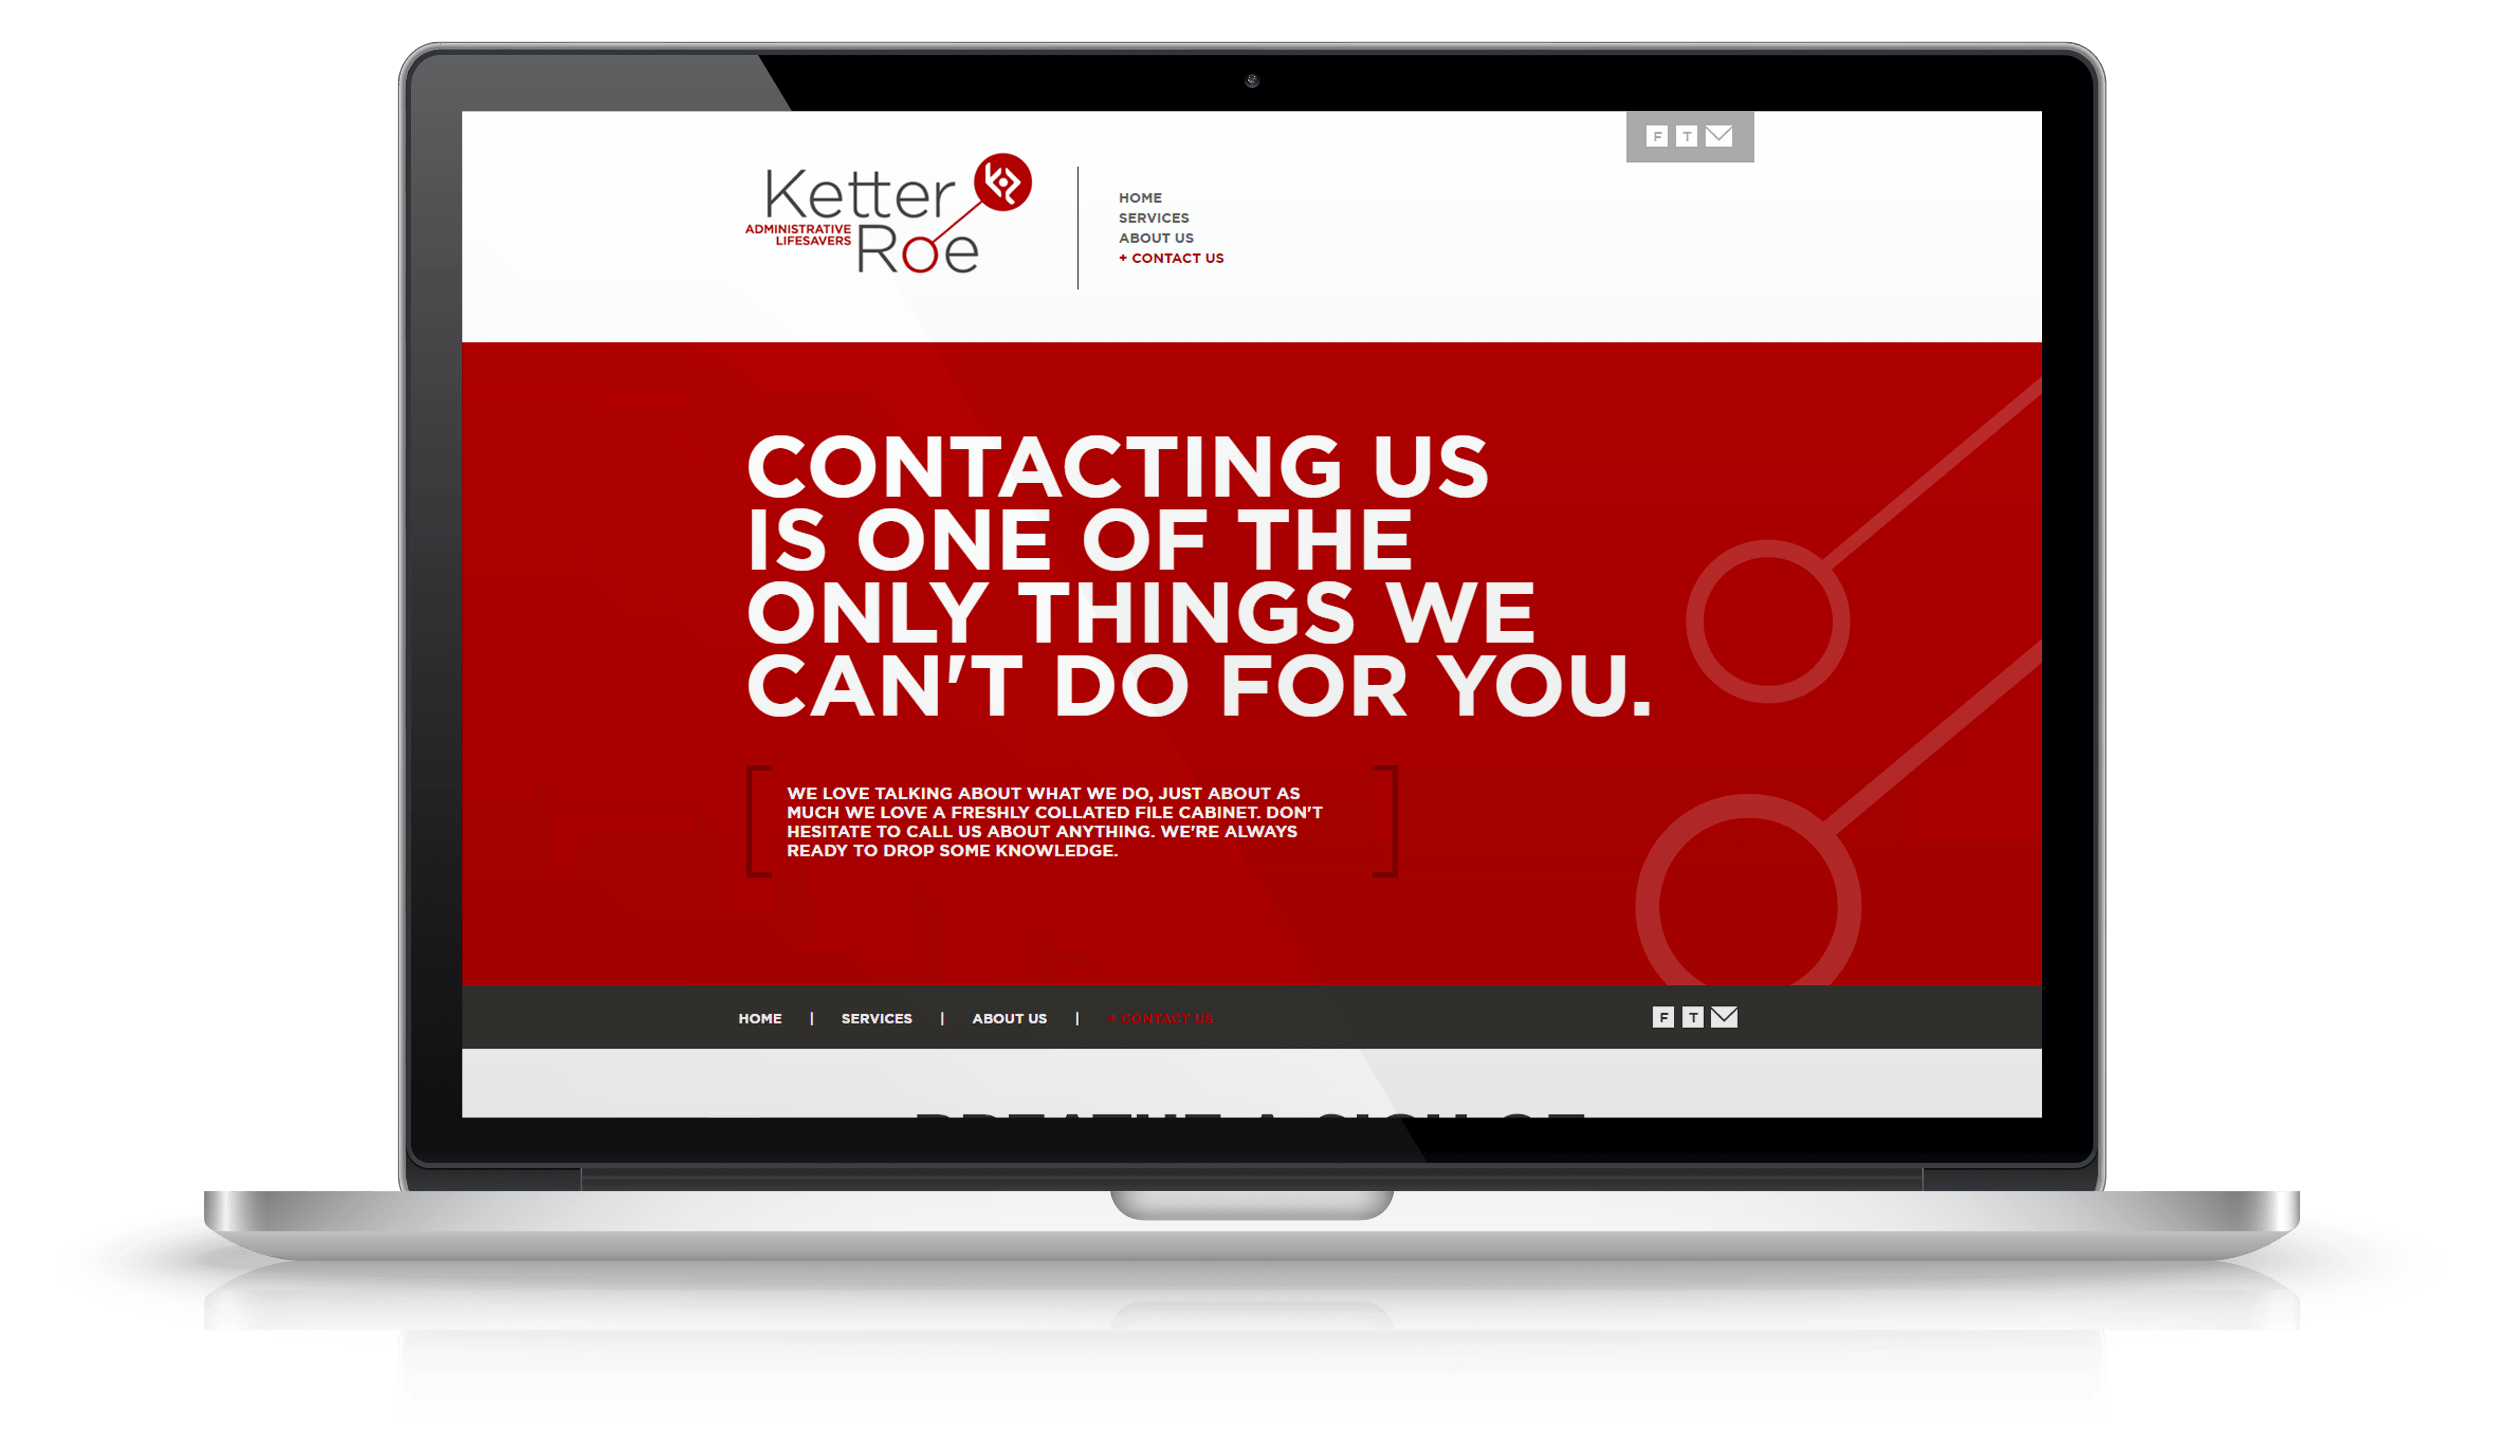 Pixelnation Project: Ketter Roe Website - Home Page